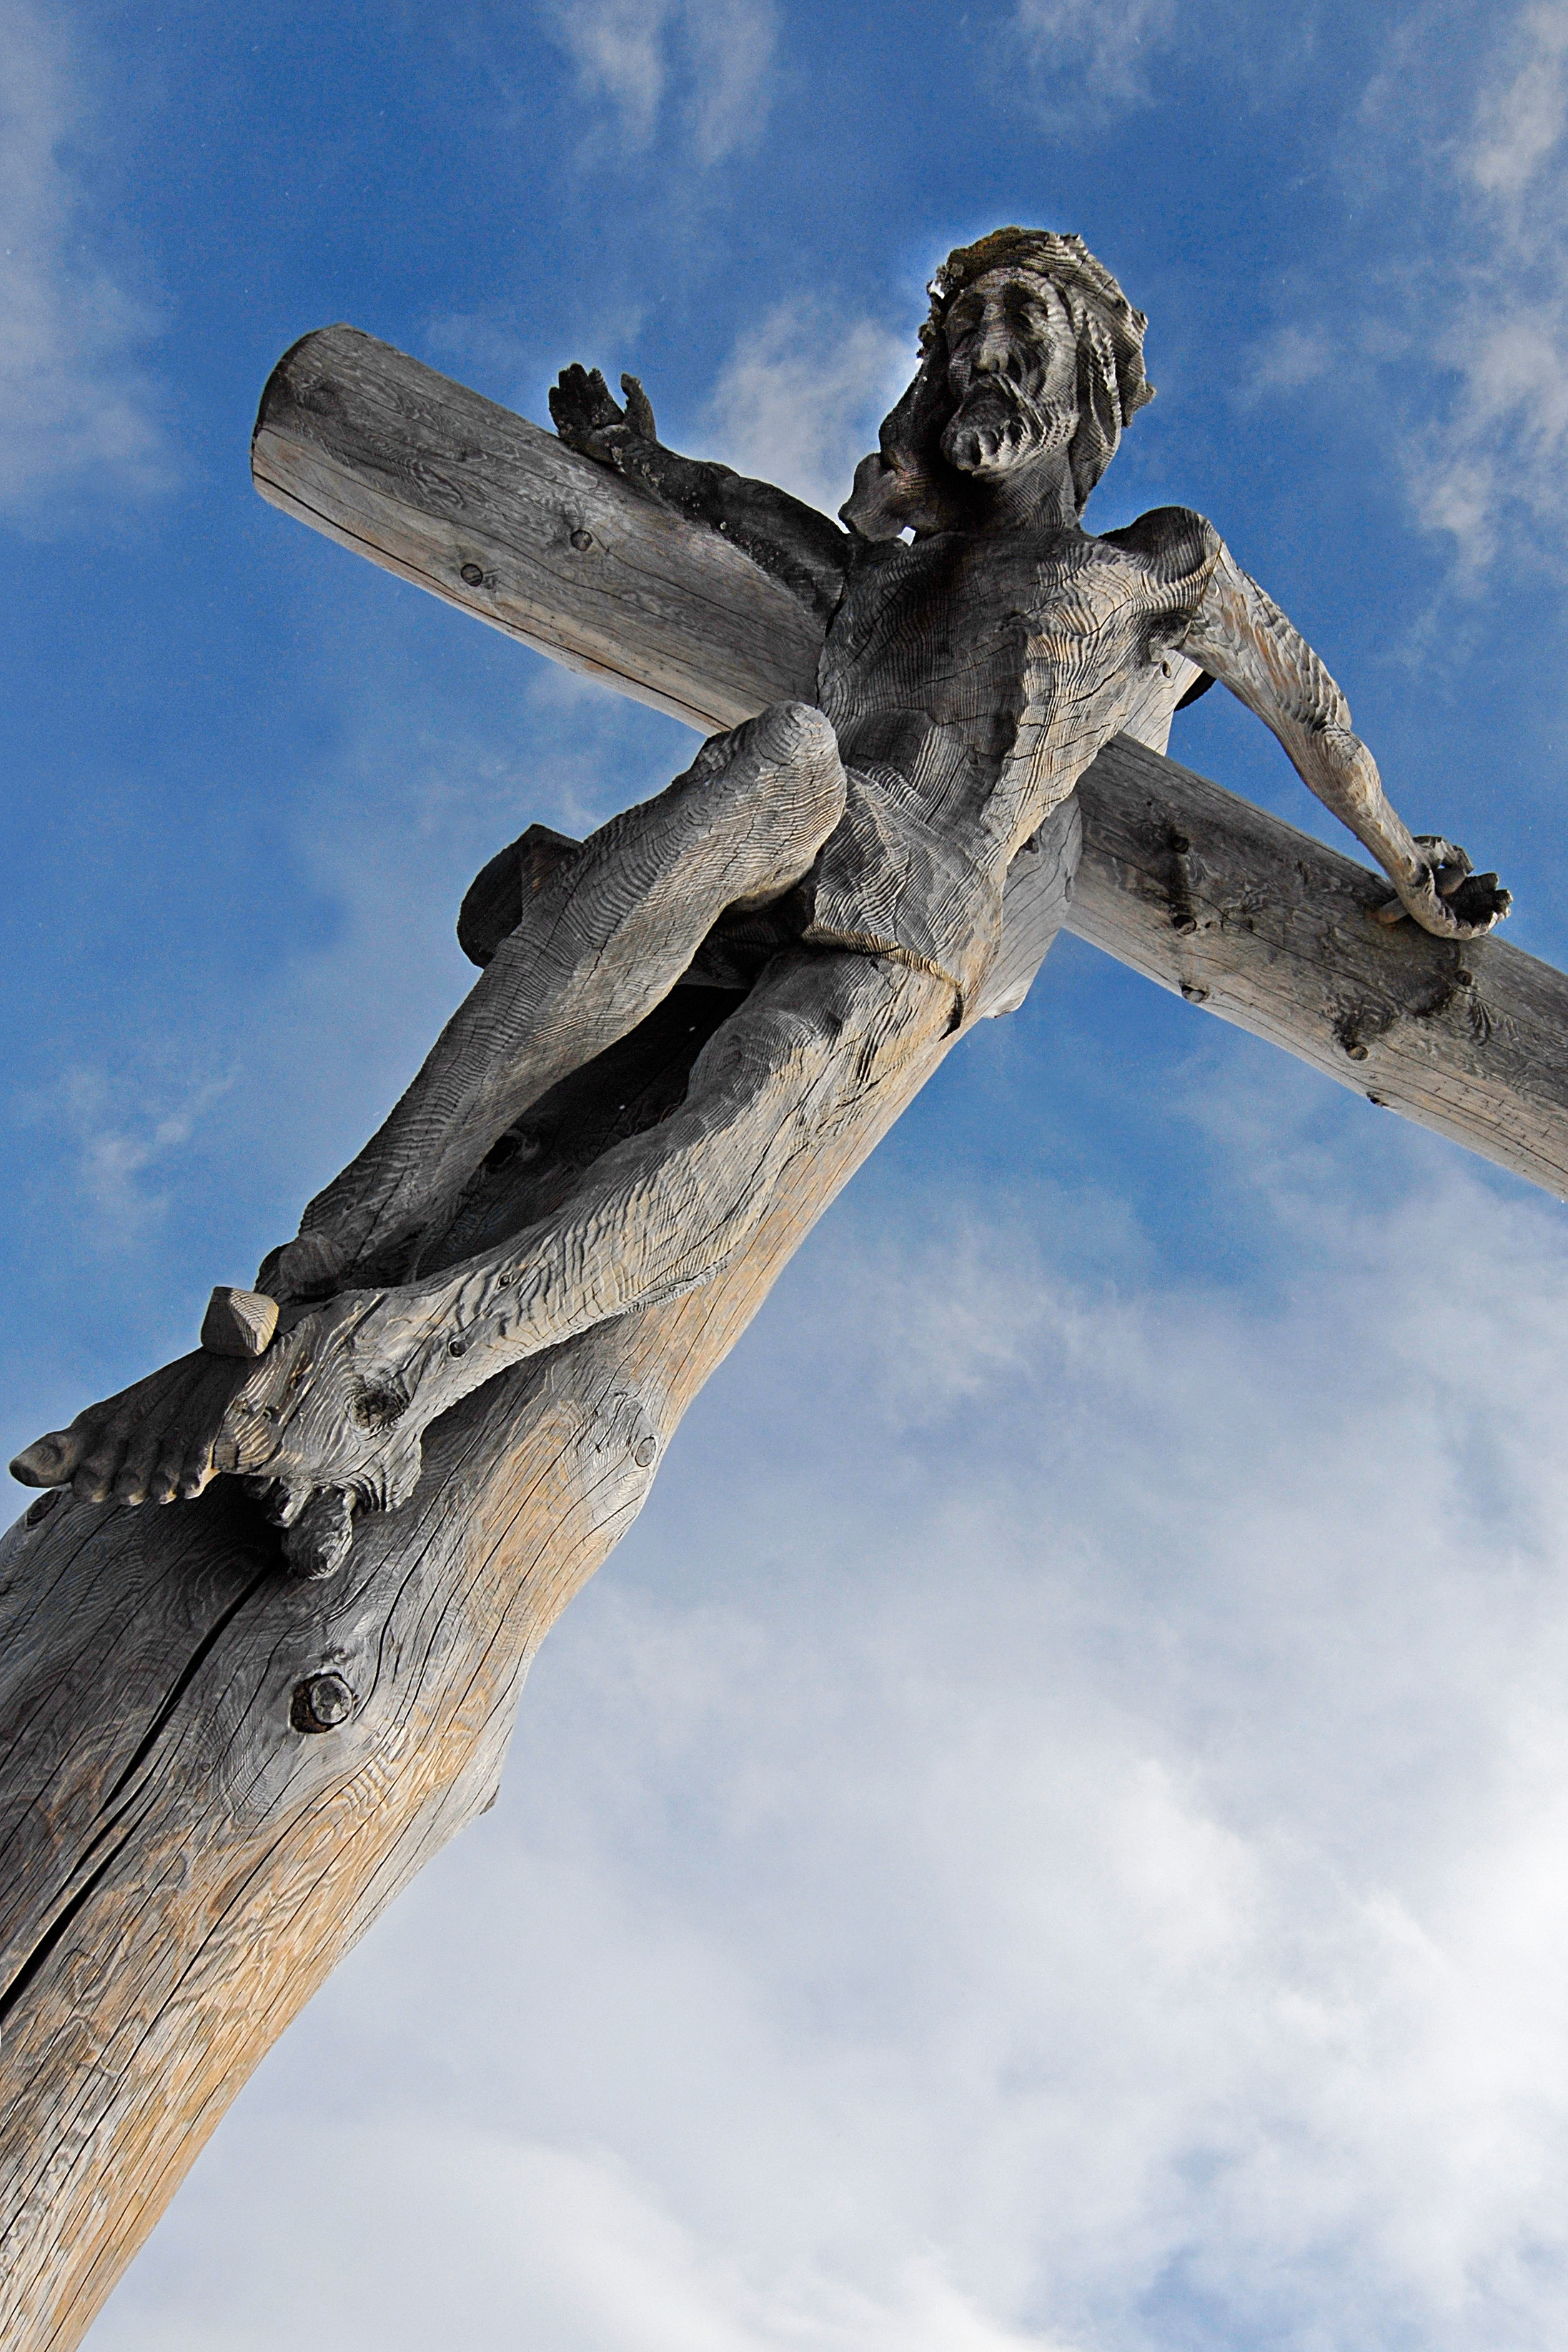 Jesus on the Cross Picture · Free Stock Photo